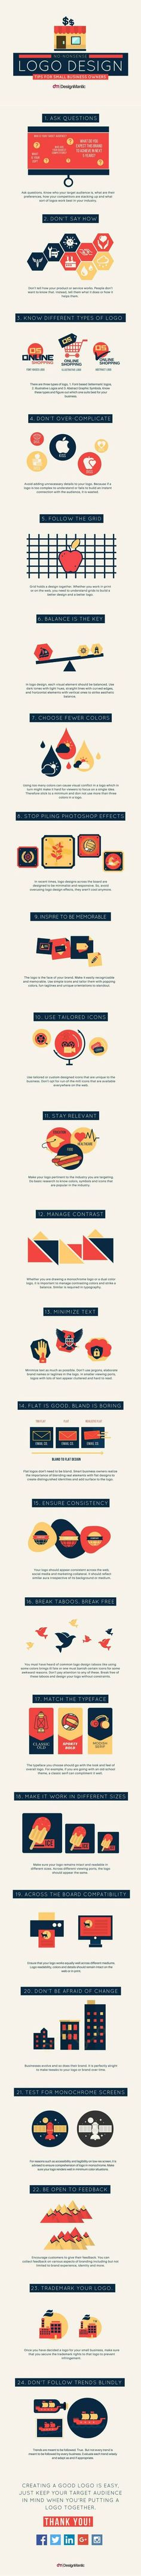 24 No-Nonsense Logo Design Tips for Small Business Owner [Infographic]